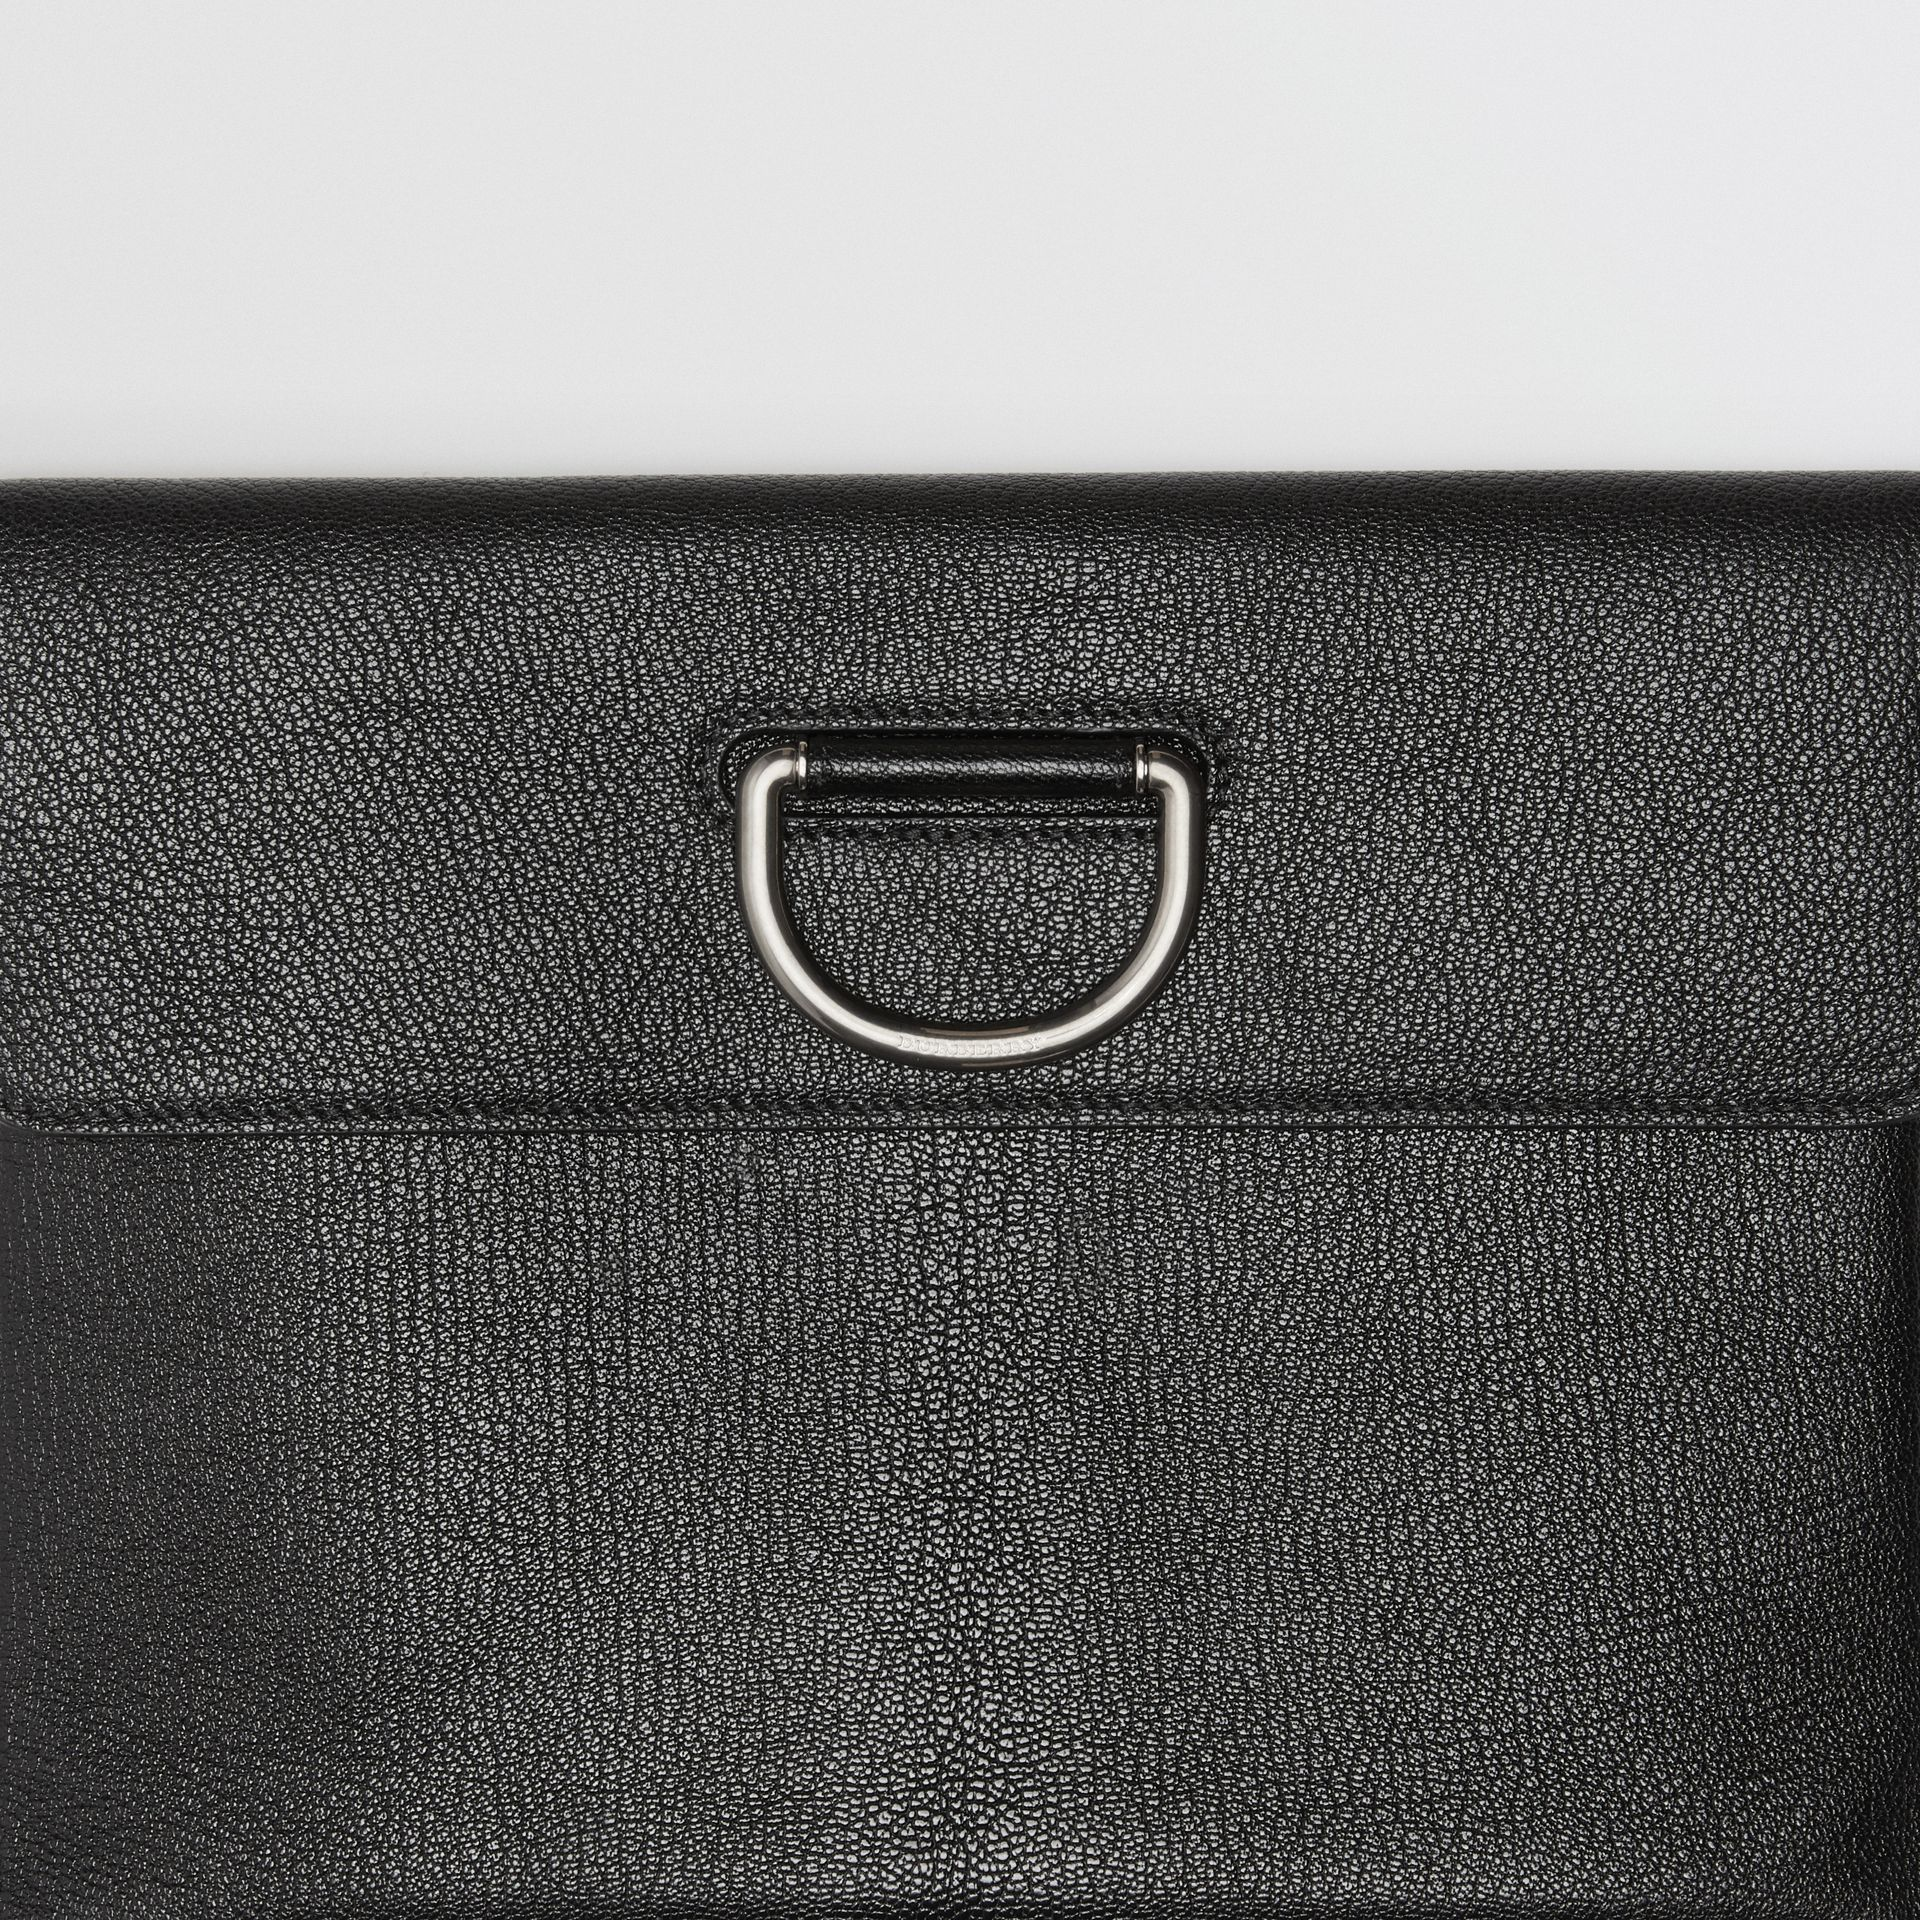 D-ring Leather Pouch in Black - Women | Burberry - gallery image 1